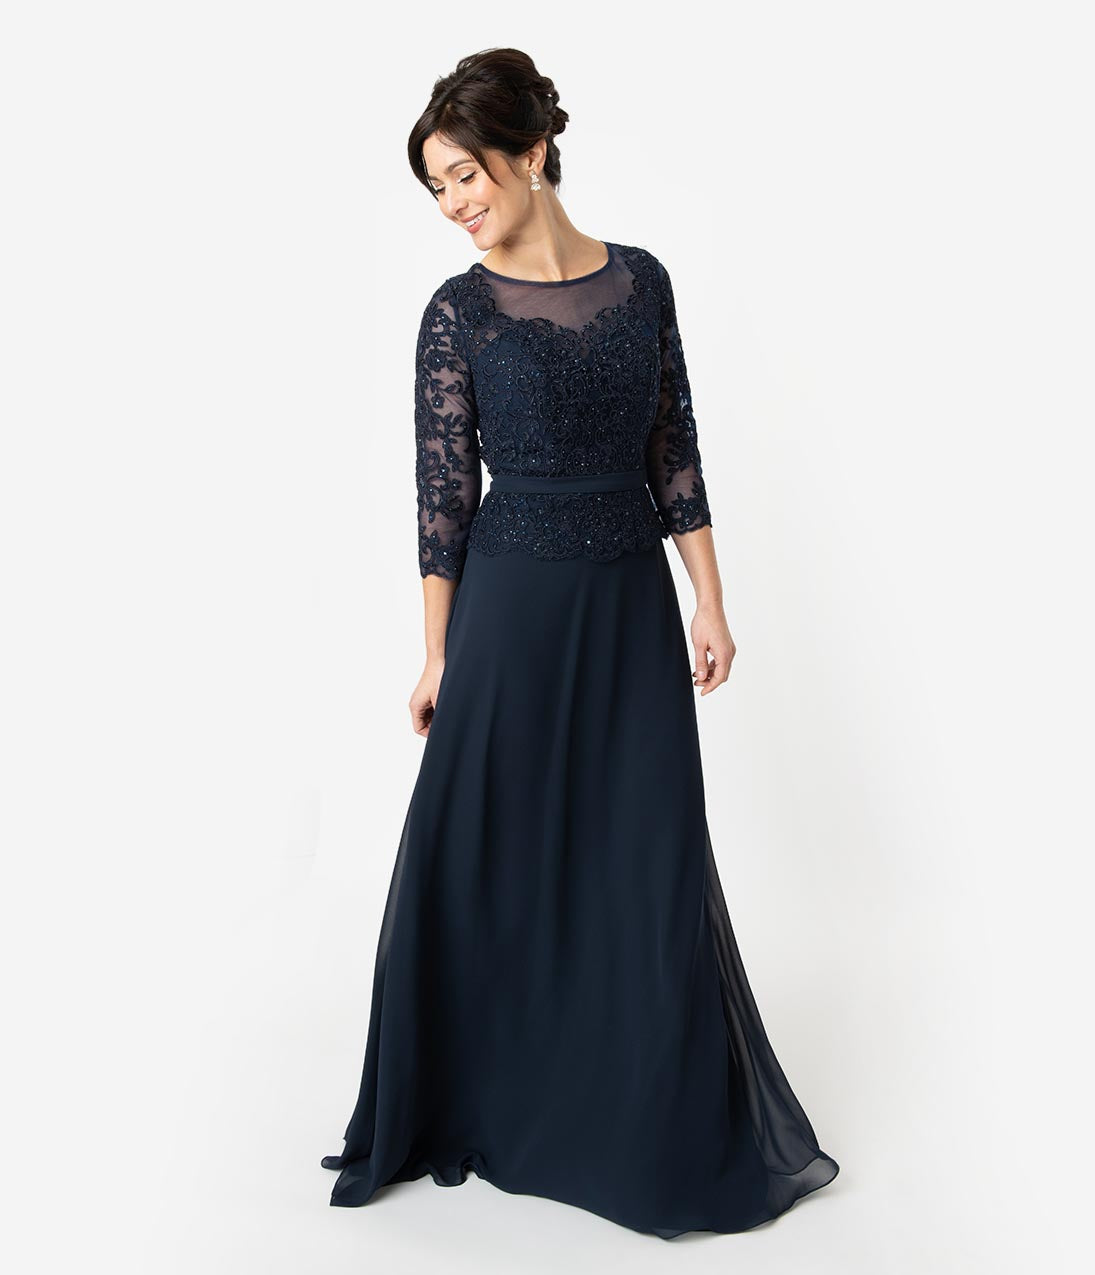 1900 Edwardian Dresses, Tea Party Dresses, White Lace Dresses Navy Blue Embellished Chiffon Sleeved Peplum Modest Long Dress $172.00 AT vintagedancer.com